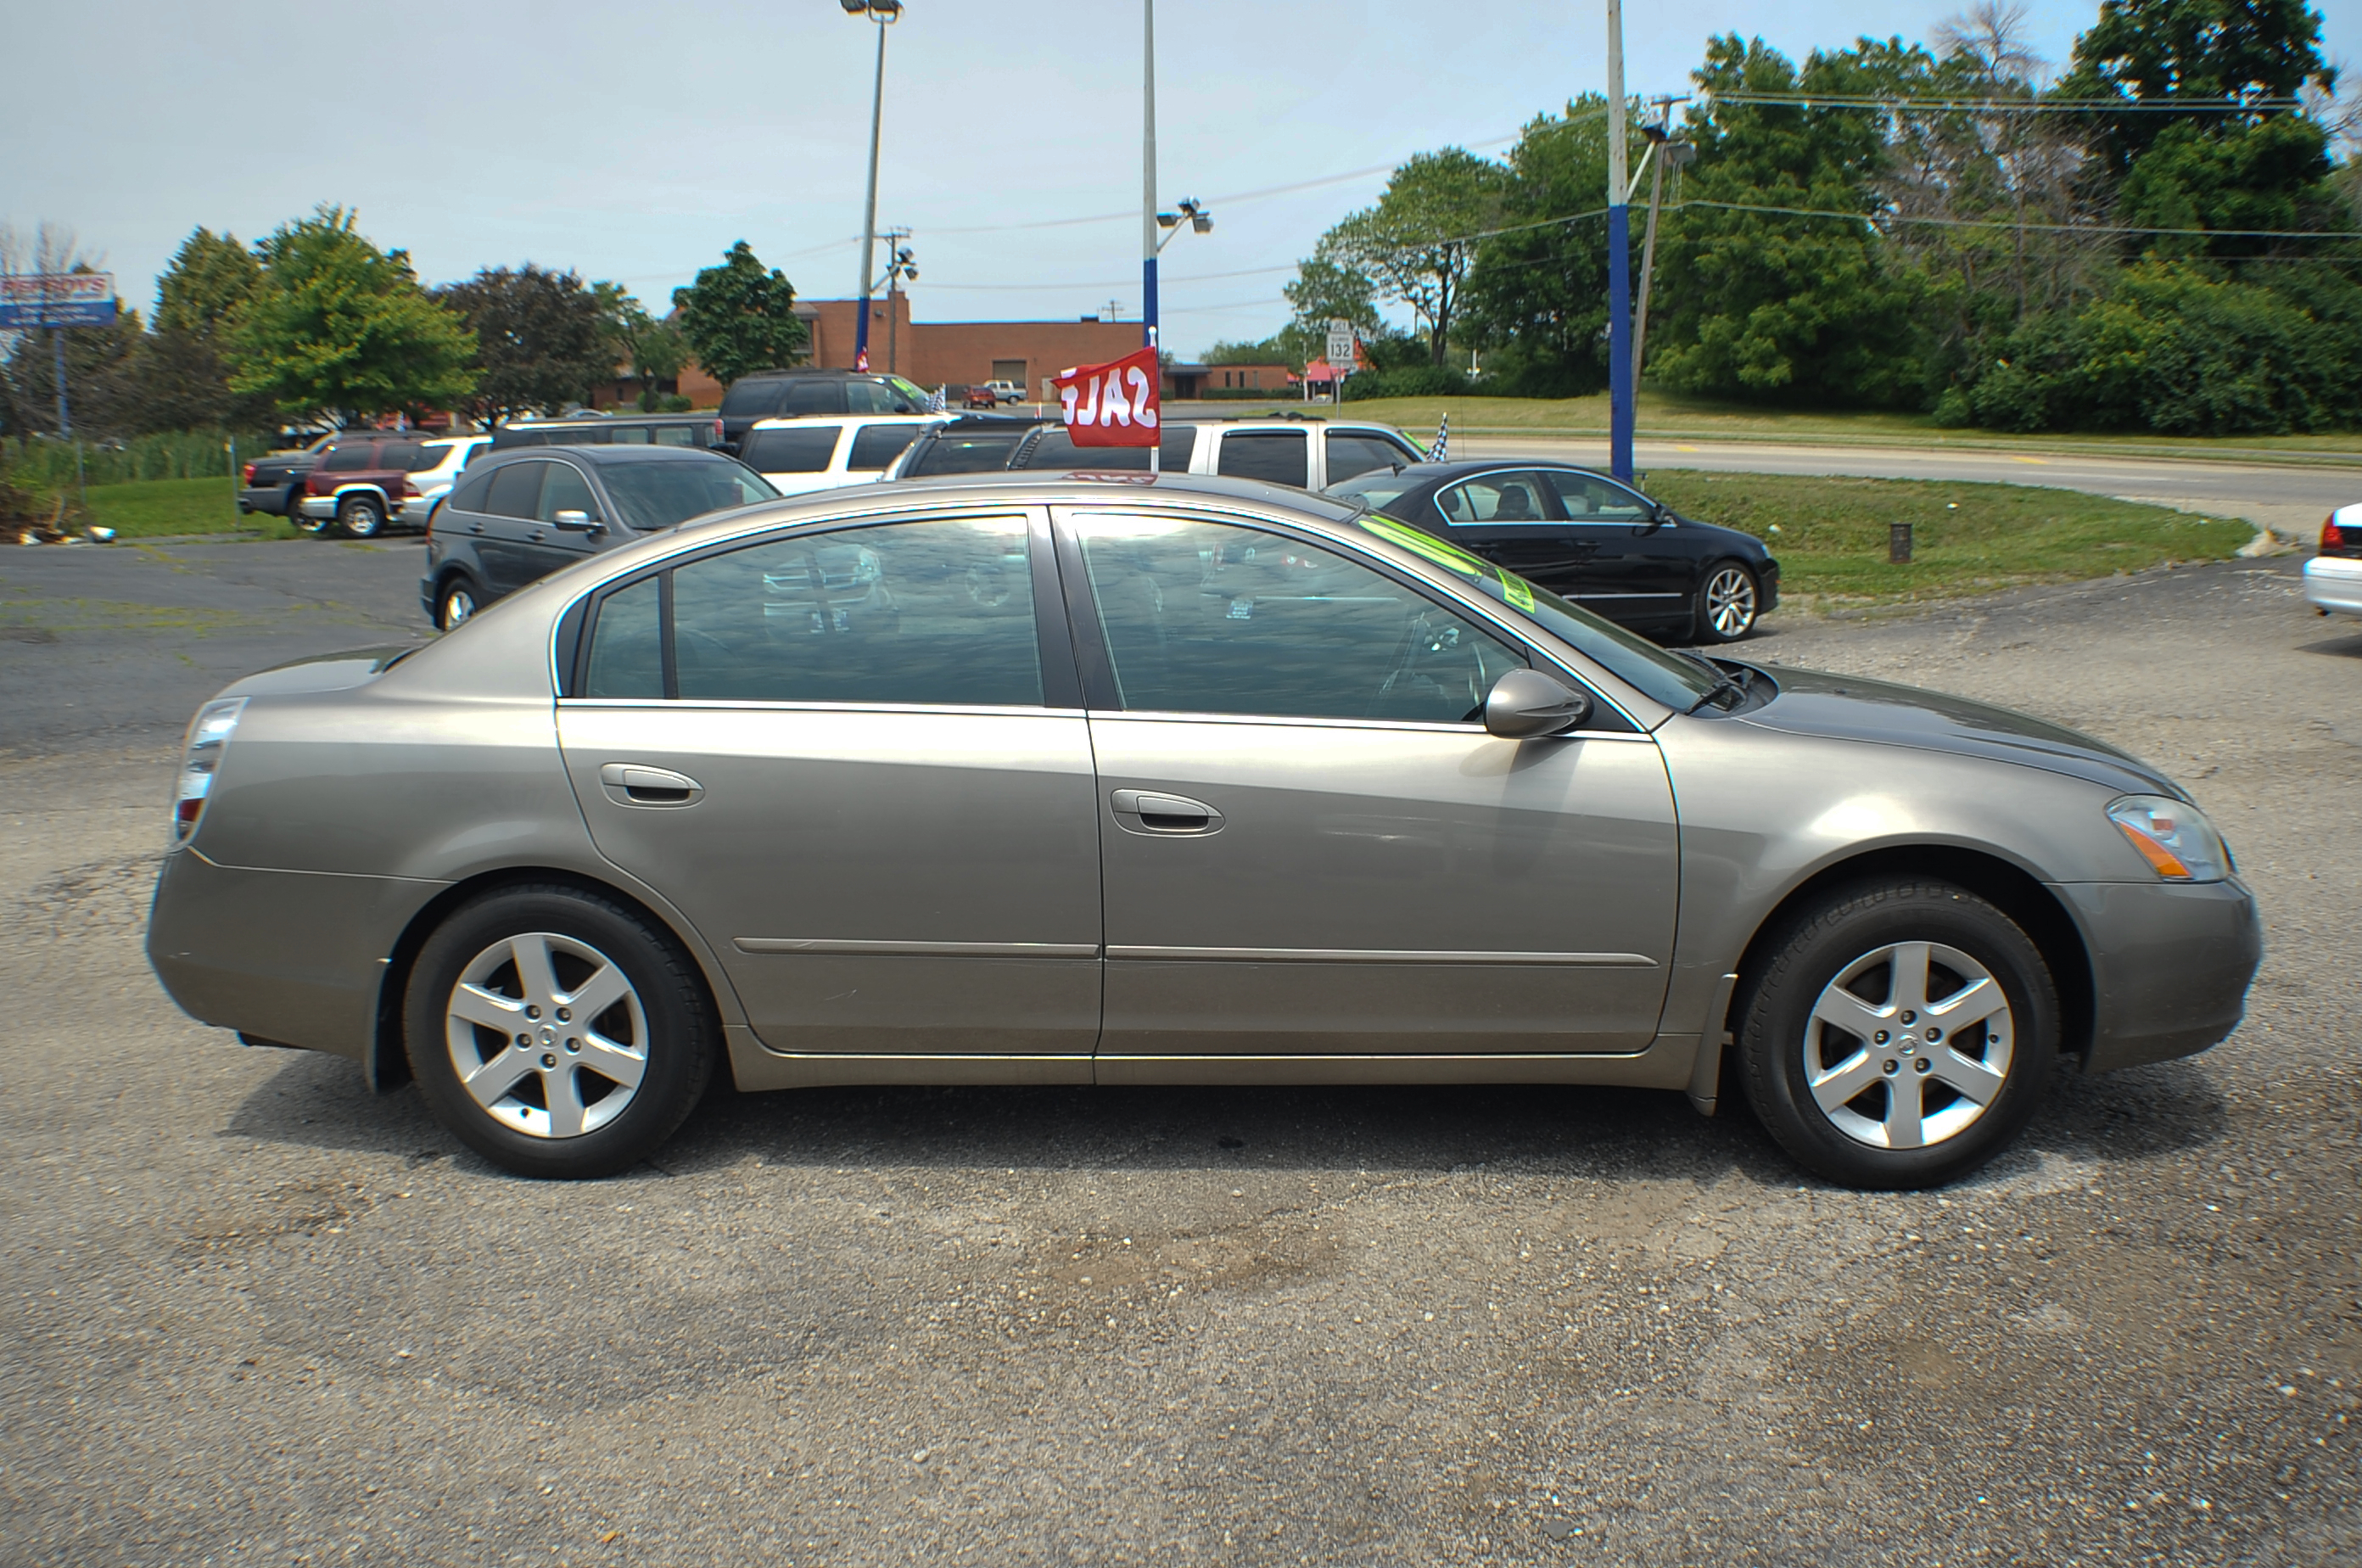 2004 Nissan Altima 2.5S Sand Sedan Used Car Sale Lindenhurst Gurnee